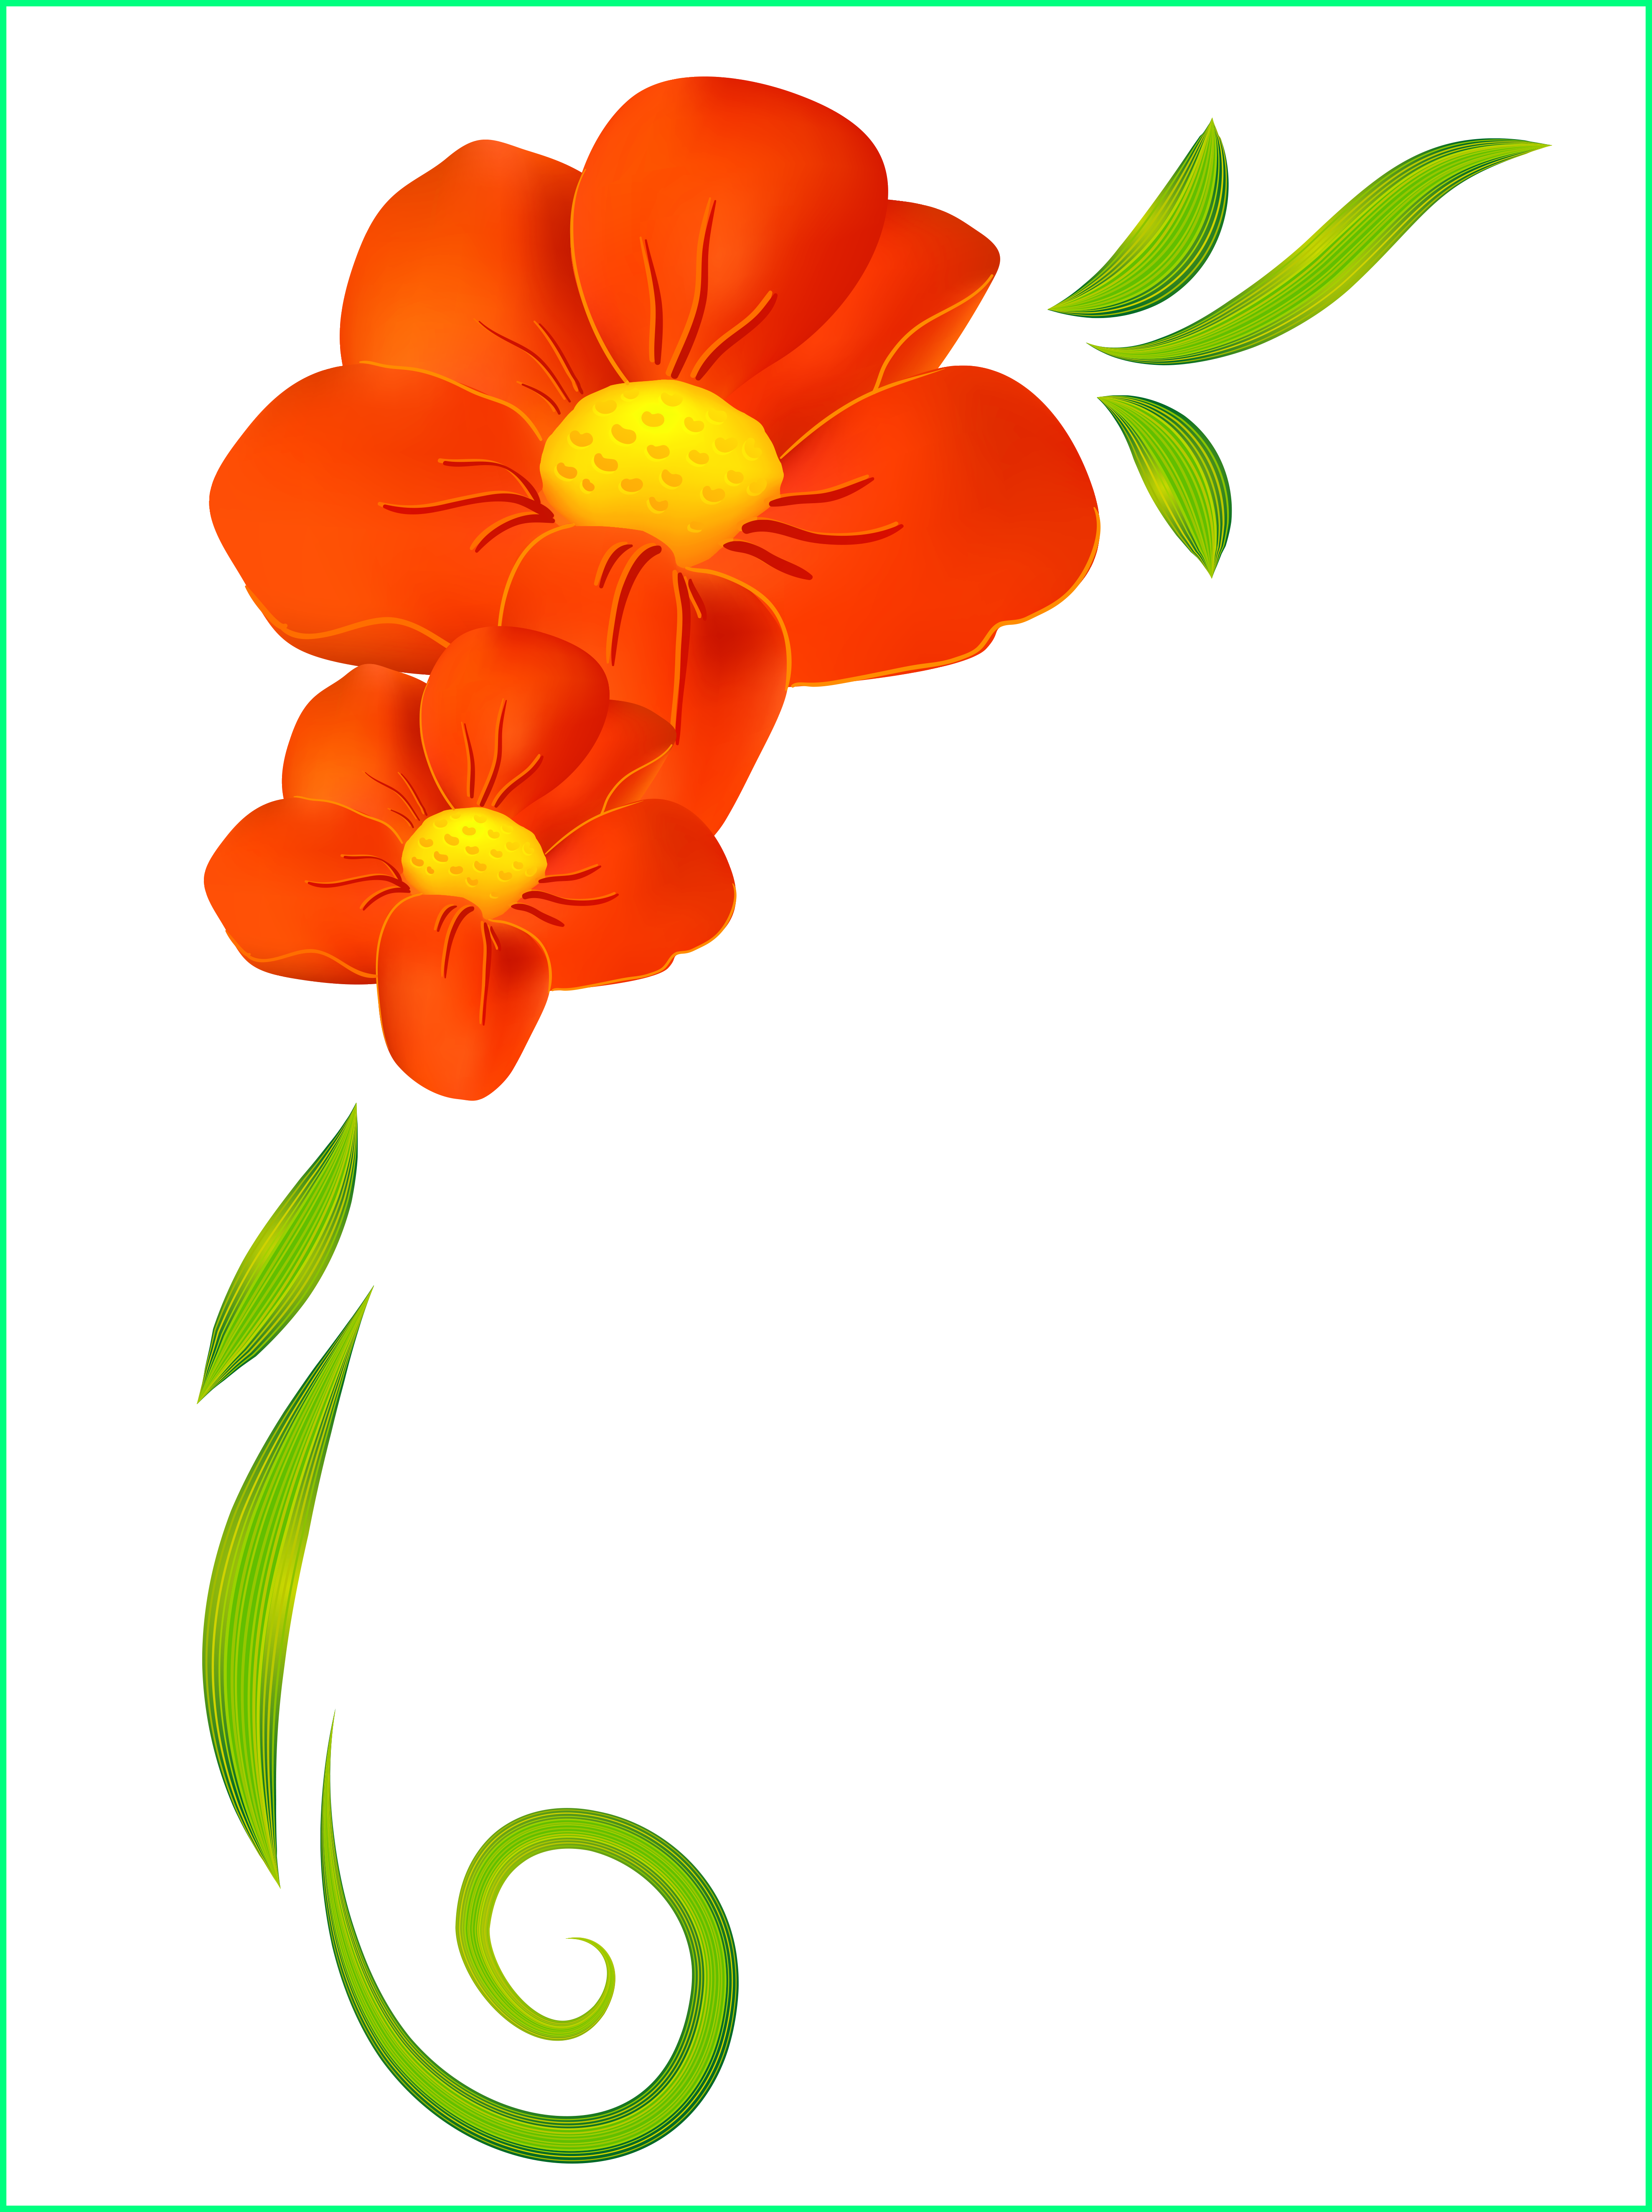 Beautiful flower www buysell. Poppy clipart wizard oz